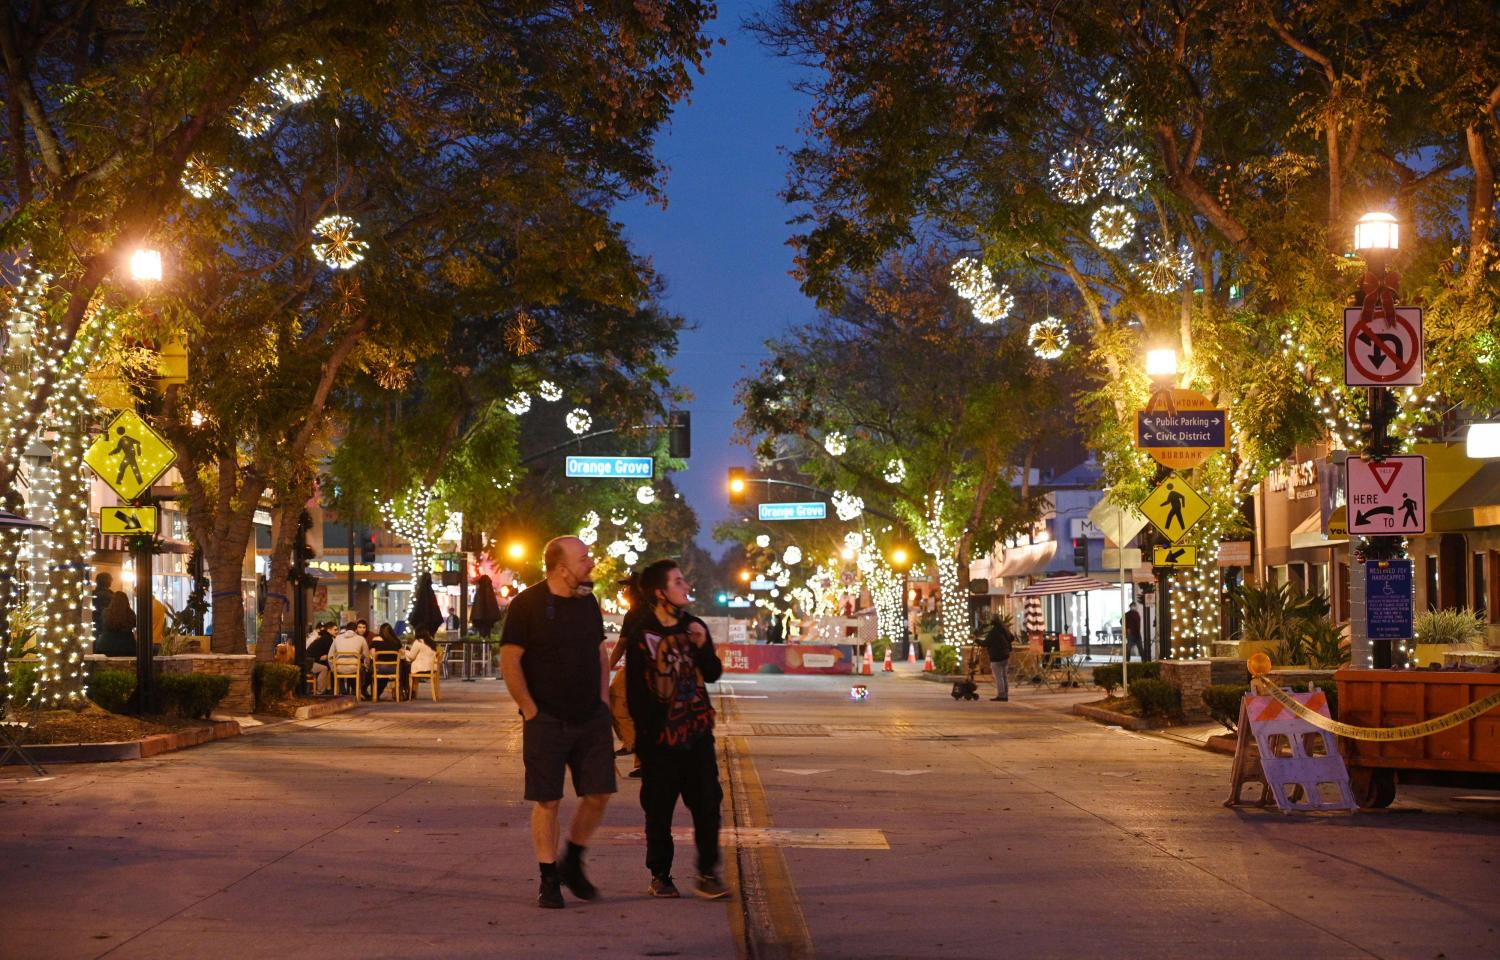 Two people walk down the main shopping and dining street in Burbank, California, closed to vehicular traffic to allow restaurants to serve food outside during the coronavirus pandemic.(Photo: AFP)